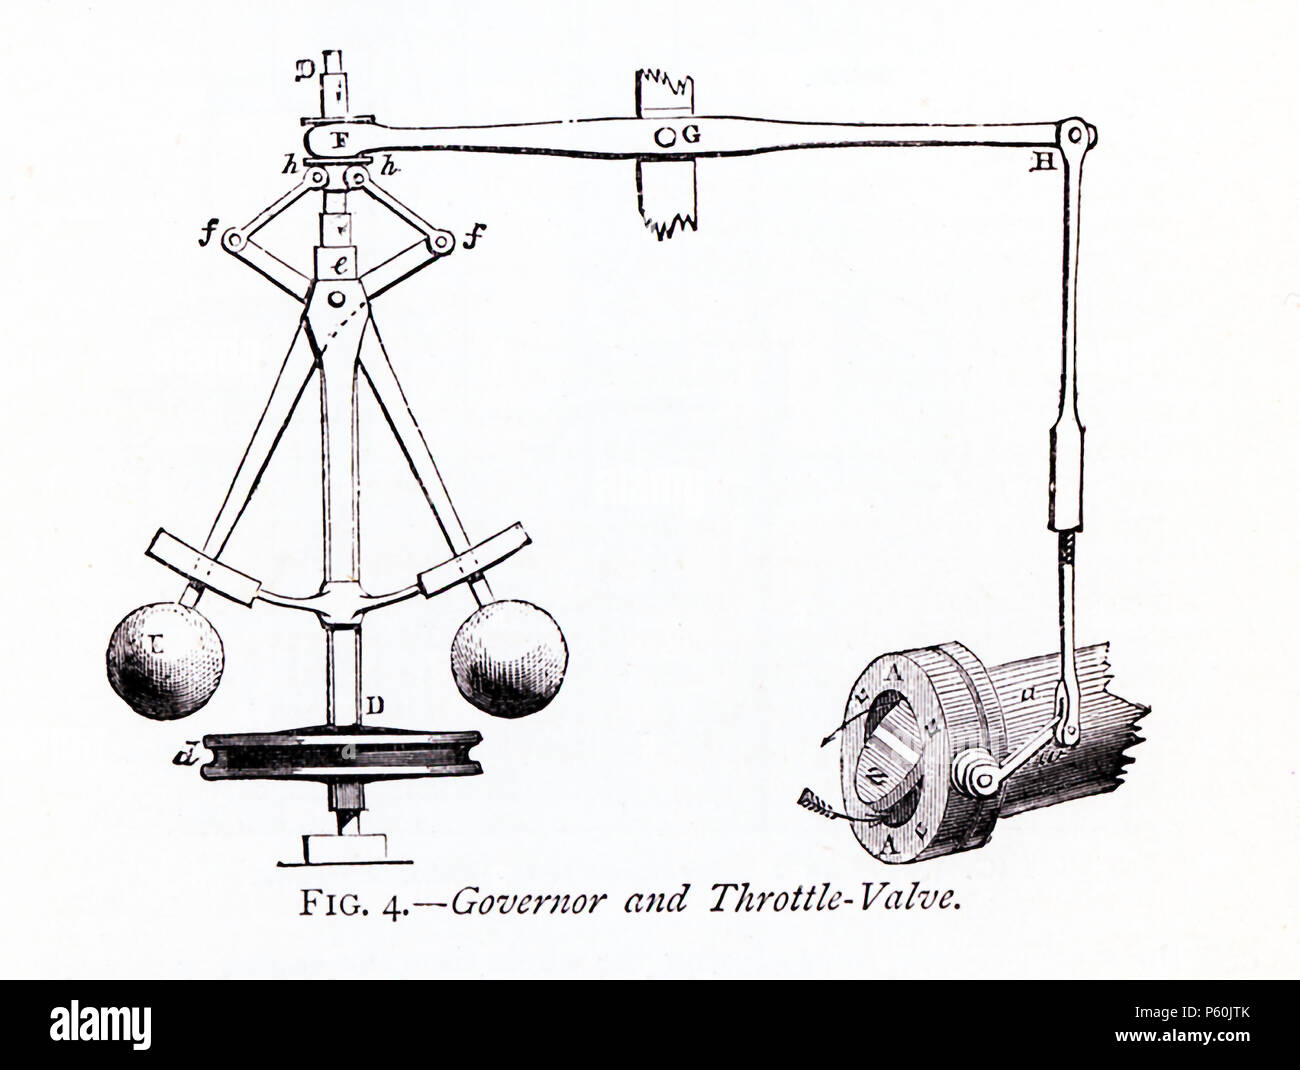 This 1870s illustration shows the governor and throttle-valve that was part of James Watt's steam engine. A Scottish inventor and mechanical engineer, James Watt (1736-1819) was said to have discovered the power of steam when he placed his hand in front of kettle that held a very hot liquid. Watt's improvements to the steam engine were key to the changes that came with the Industrial Revolution. The governor islabeled D here. The throttle valve is the piece at bottom right. - Stock Image